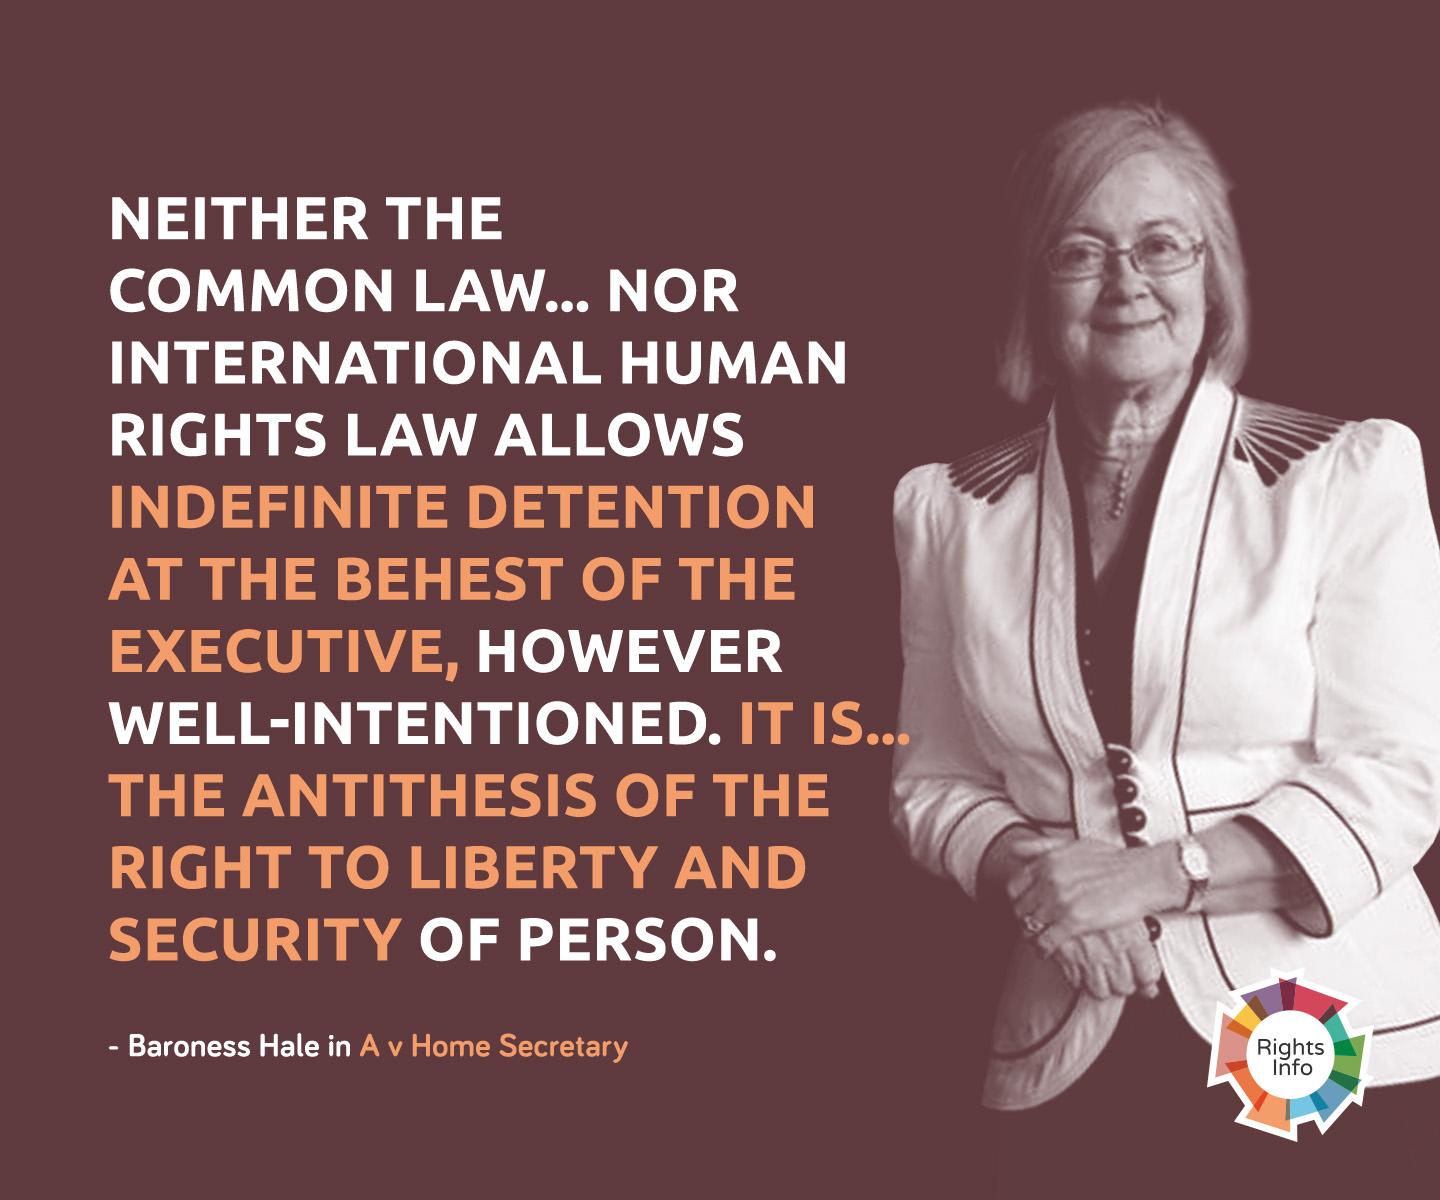 Baroness Hale in A v Home Secretary 2